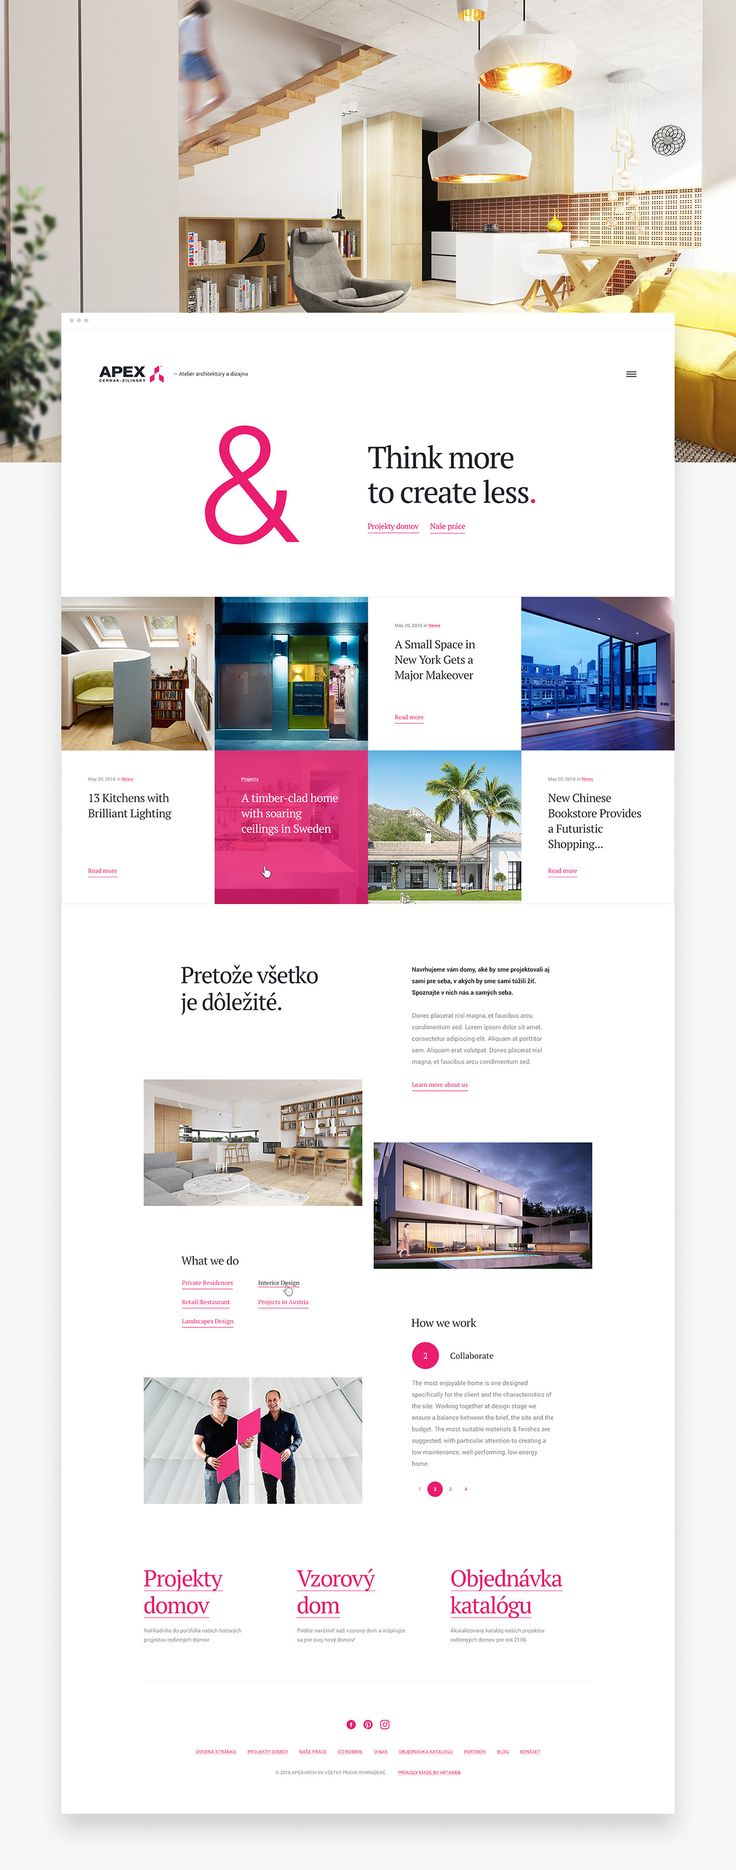 8 best ecosystems images on pinterest digital marketing info apex architecture on behance fandeluxe Gallery